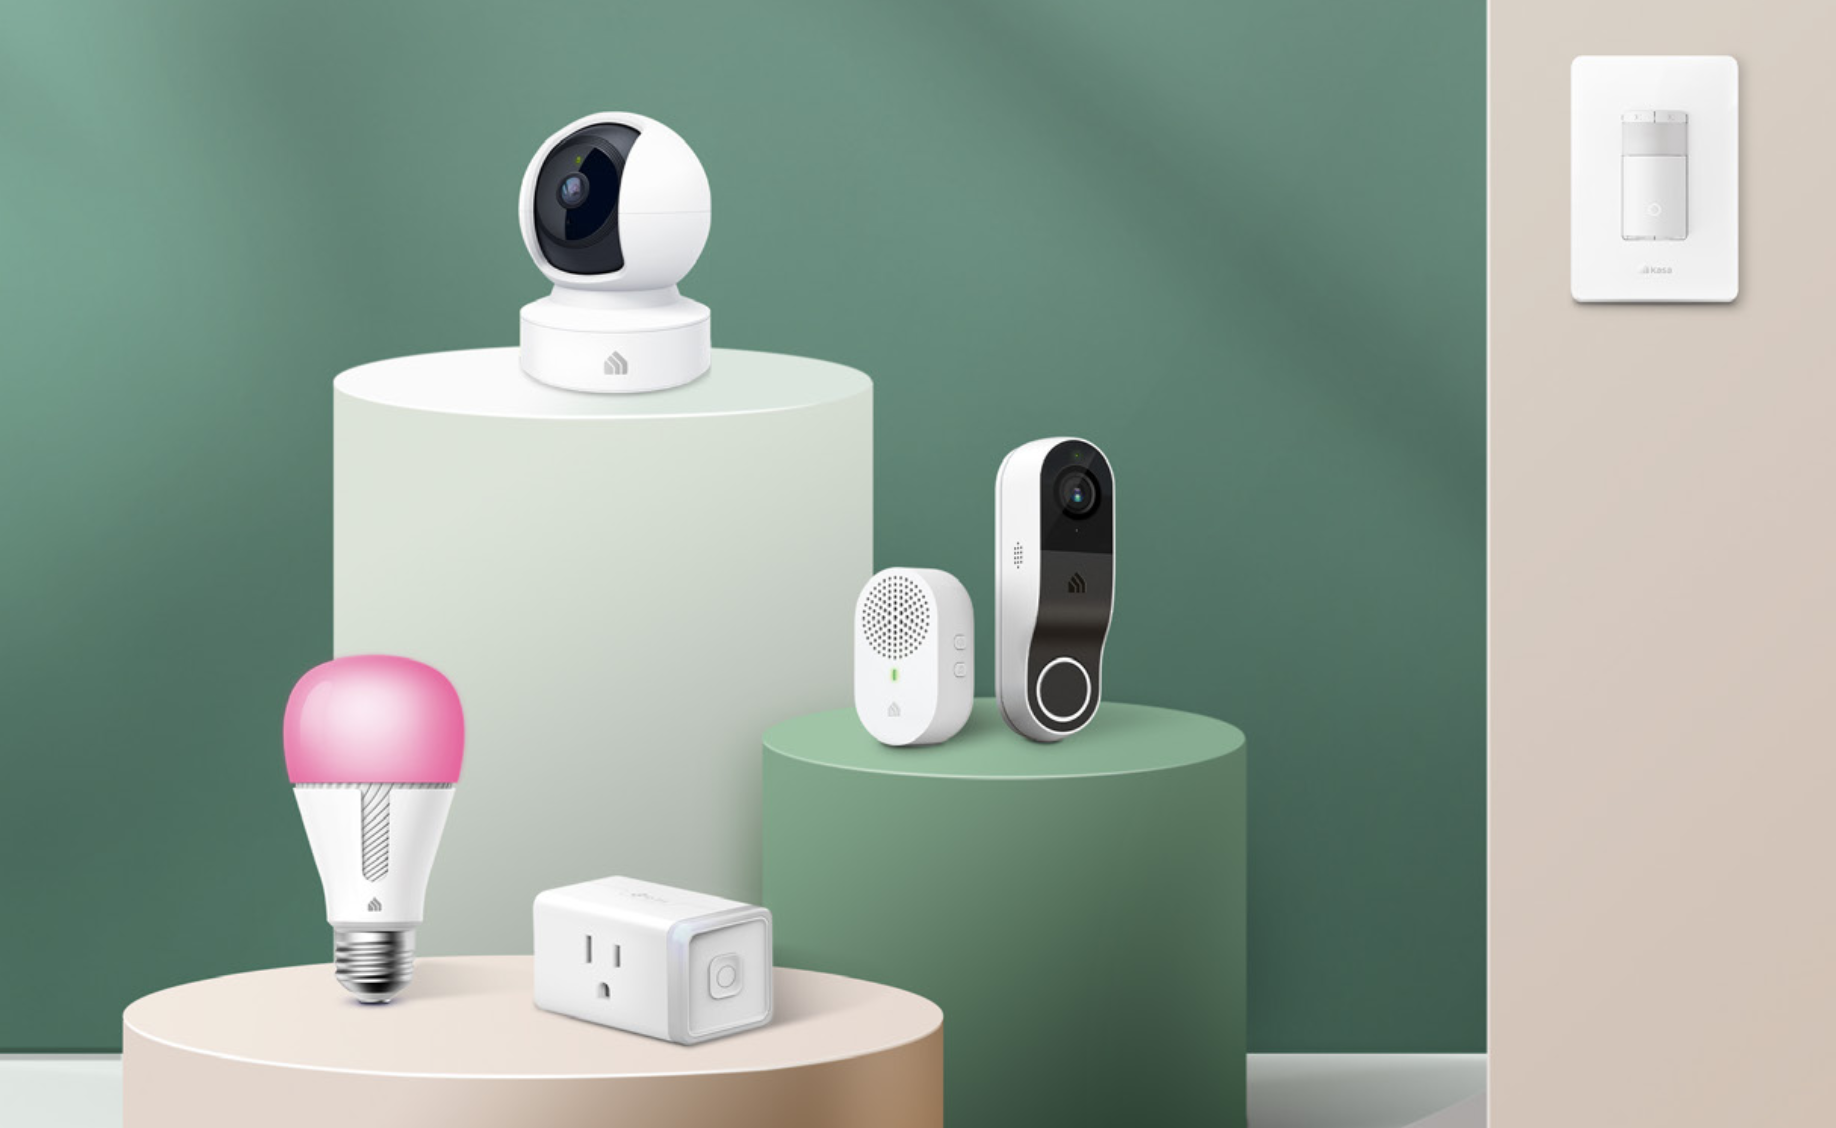 TP-Link's latest Kasa smart home gadgets include a previously canceled doorbell - Android Police